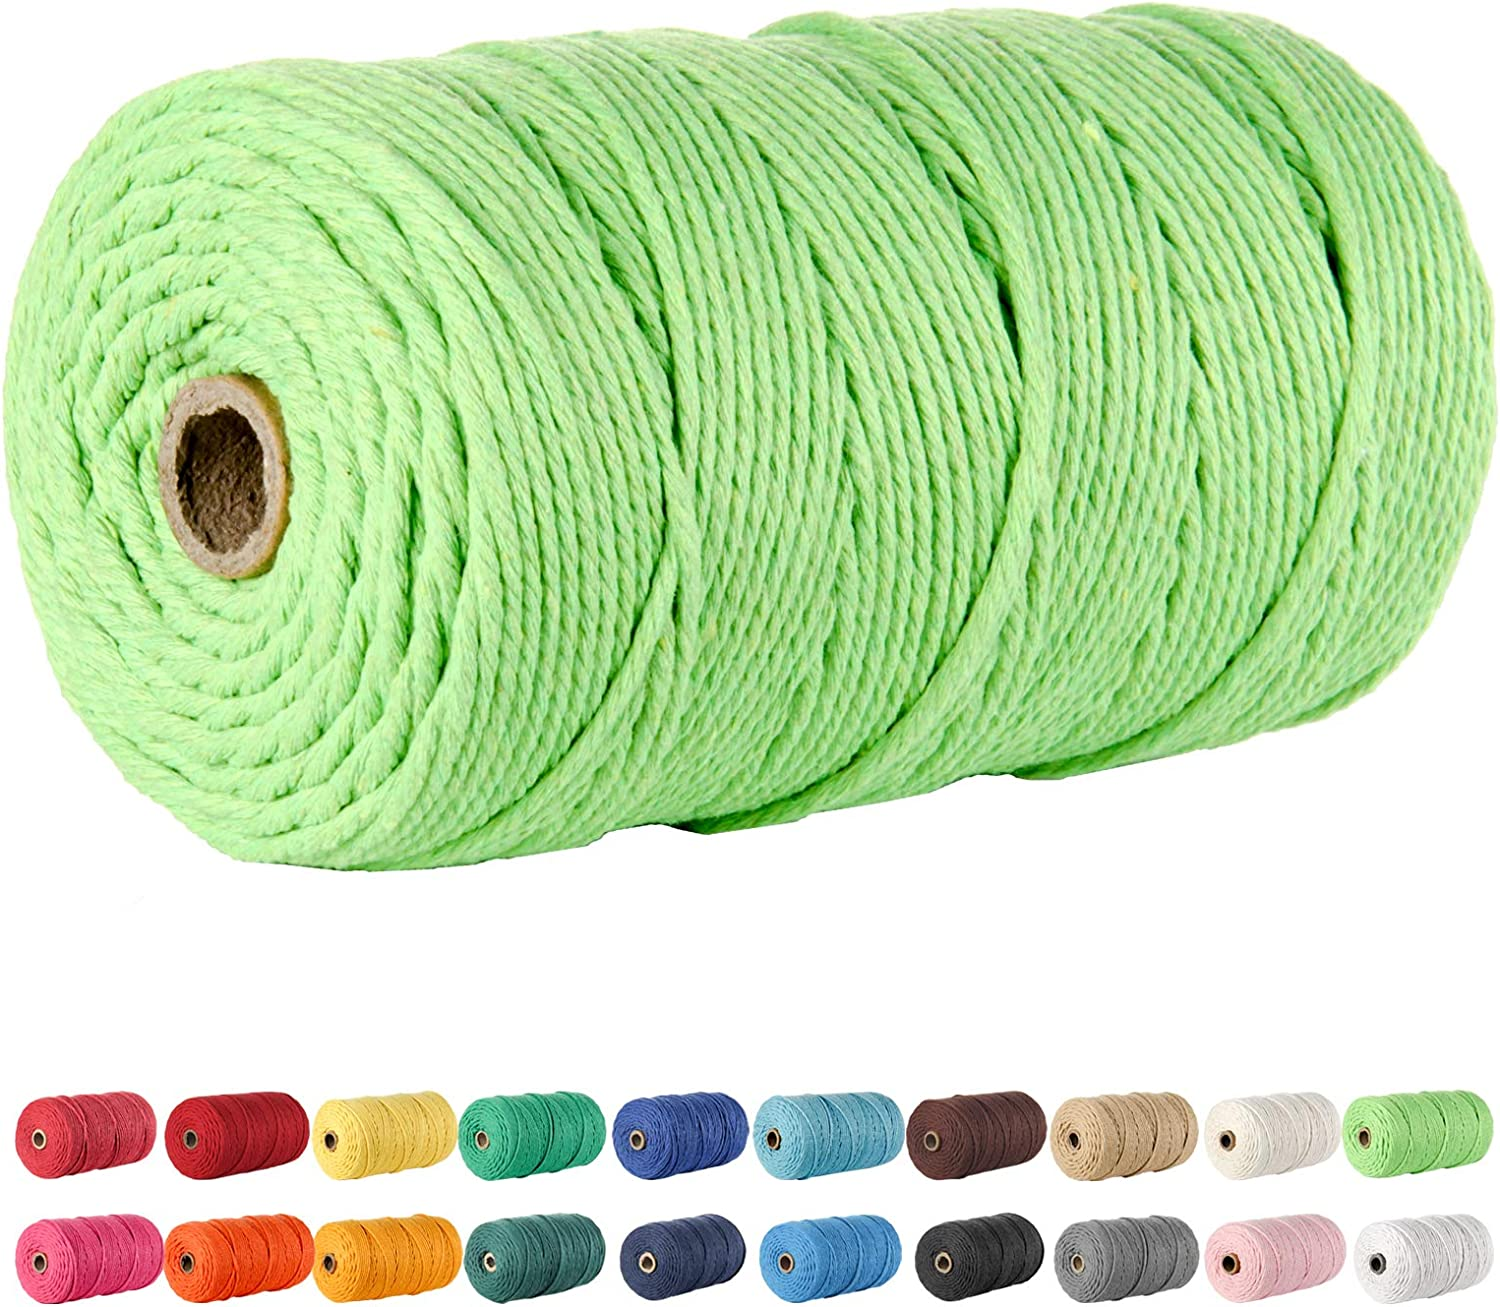 POZEAN 3mm x 220 Yards DIY Crafts Knitting Christmas Wedding Decorative Projects Macrame Cord Cotton Rope,100/% Natural Cotton Macrame Rope for Wall Hanging About 200m Plant Hangers Apple Green